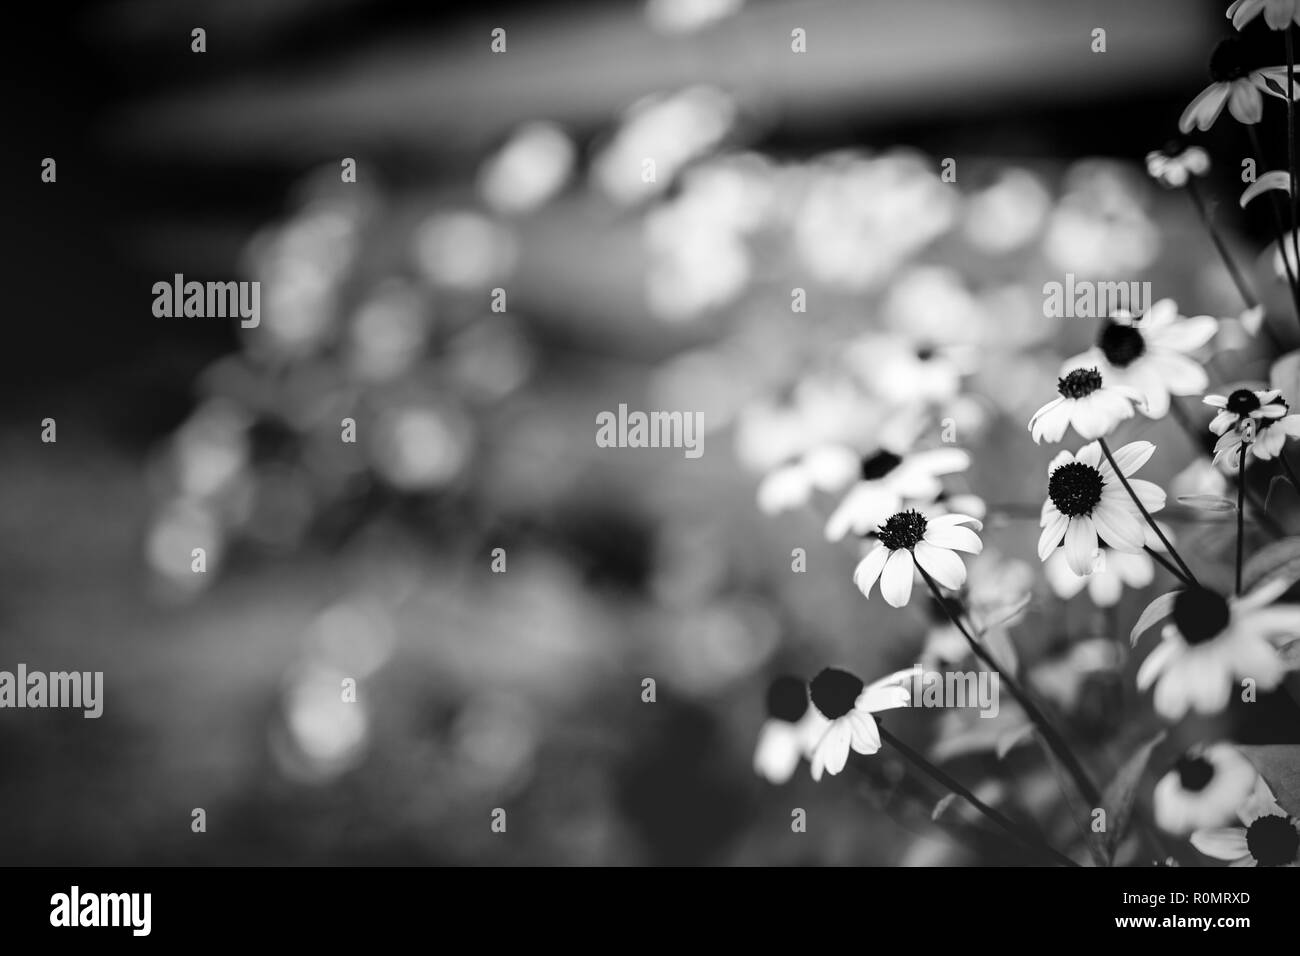 Beautiful small flowers on blurred background, nature seasonal concept. Blurred bokeh background and blooming yellow flowers - Stock Image